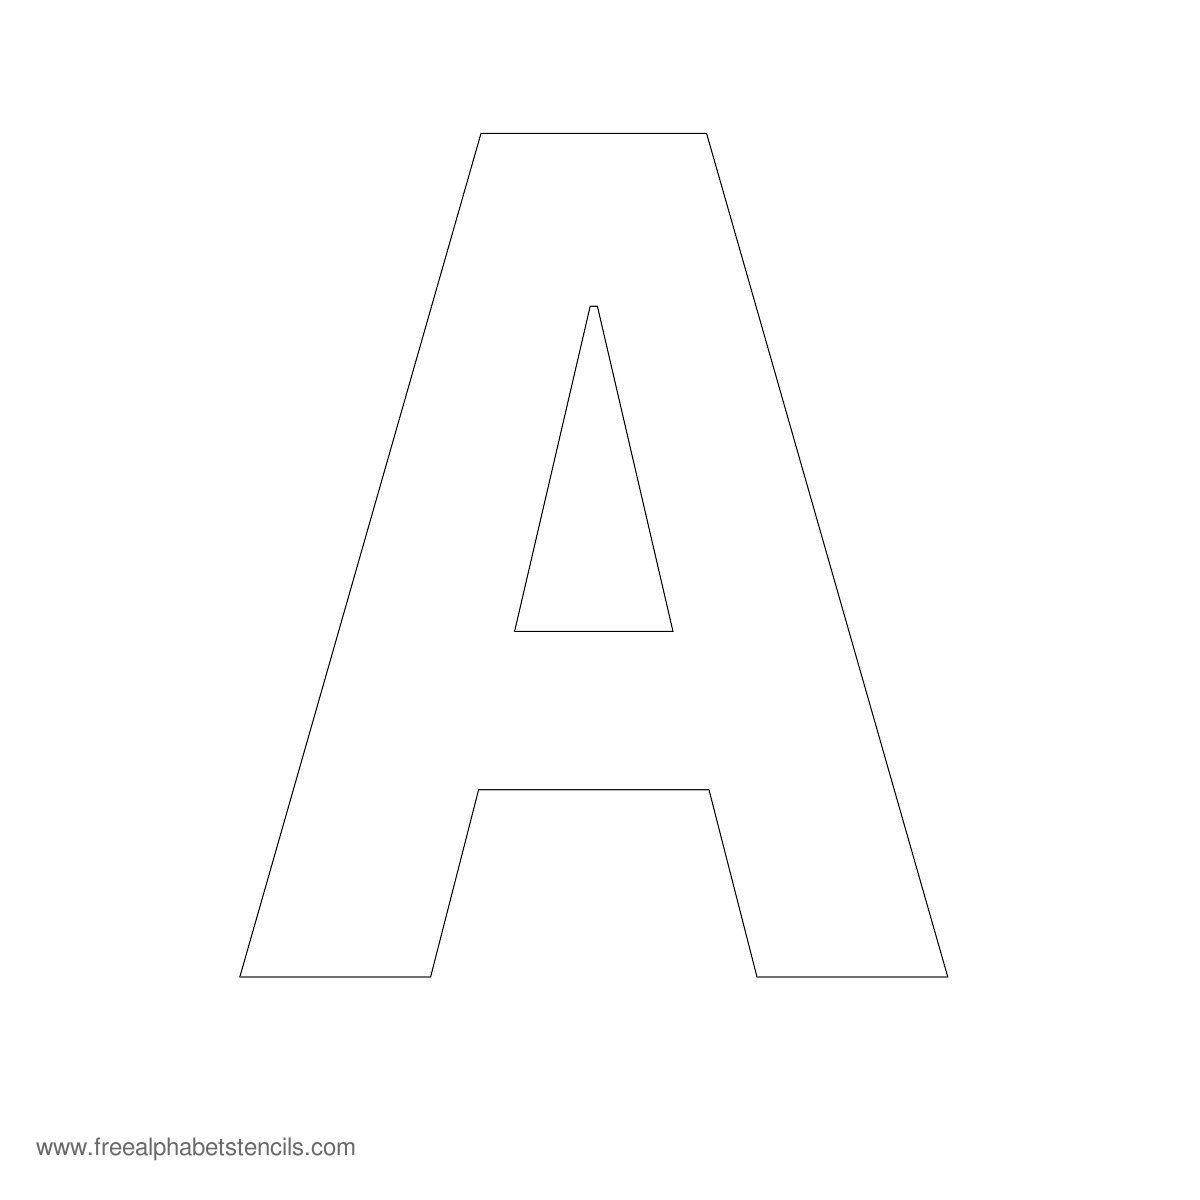 Letter Printable Images Gallery Category Page 2